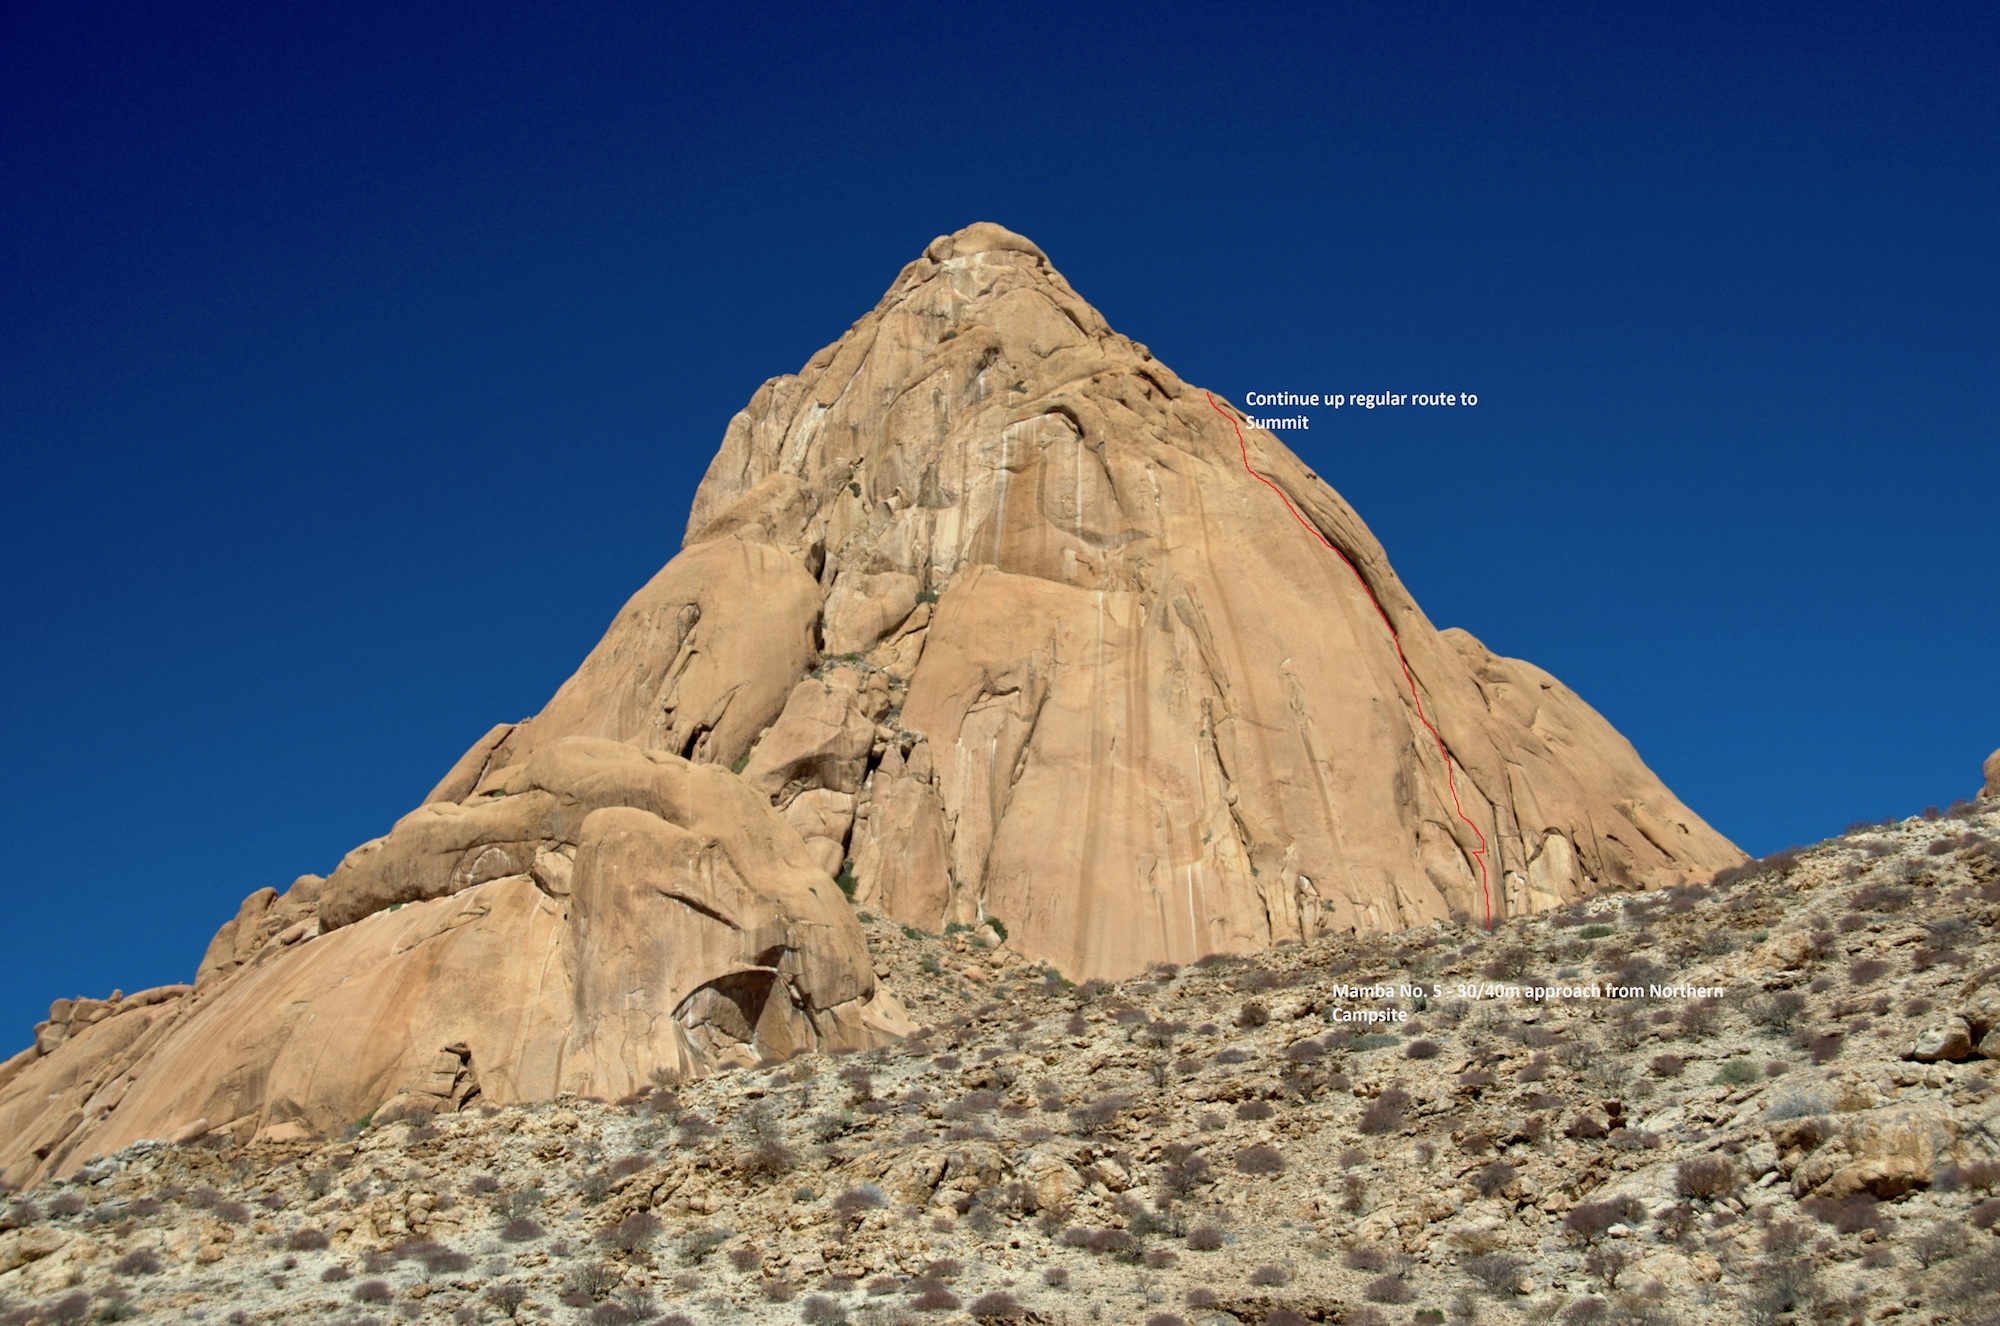 The nothwest face of Great Spitzkoppe, showing the line of Mamba No. 5. Another five pitches up the regular route gains the summit.